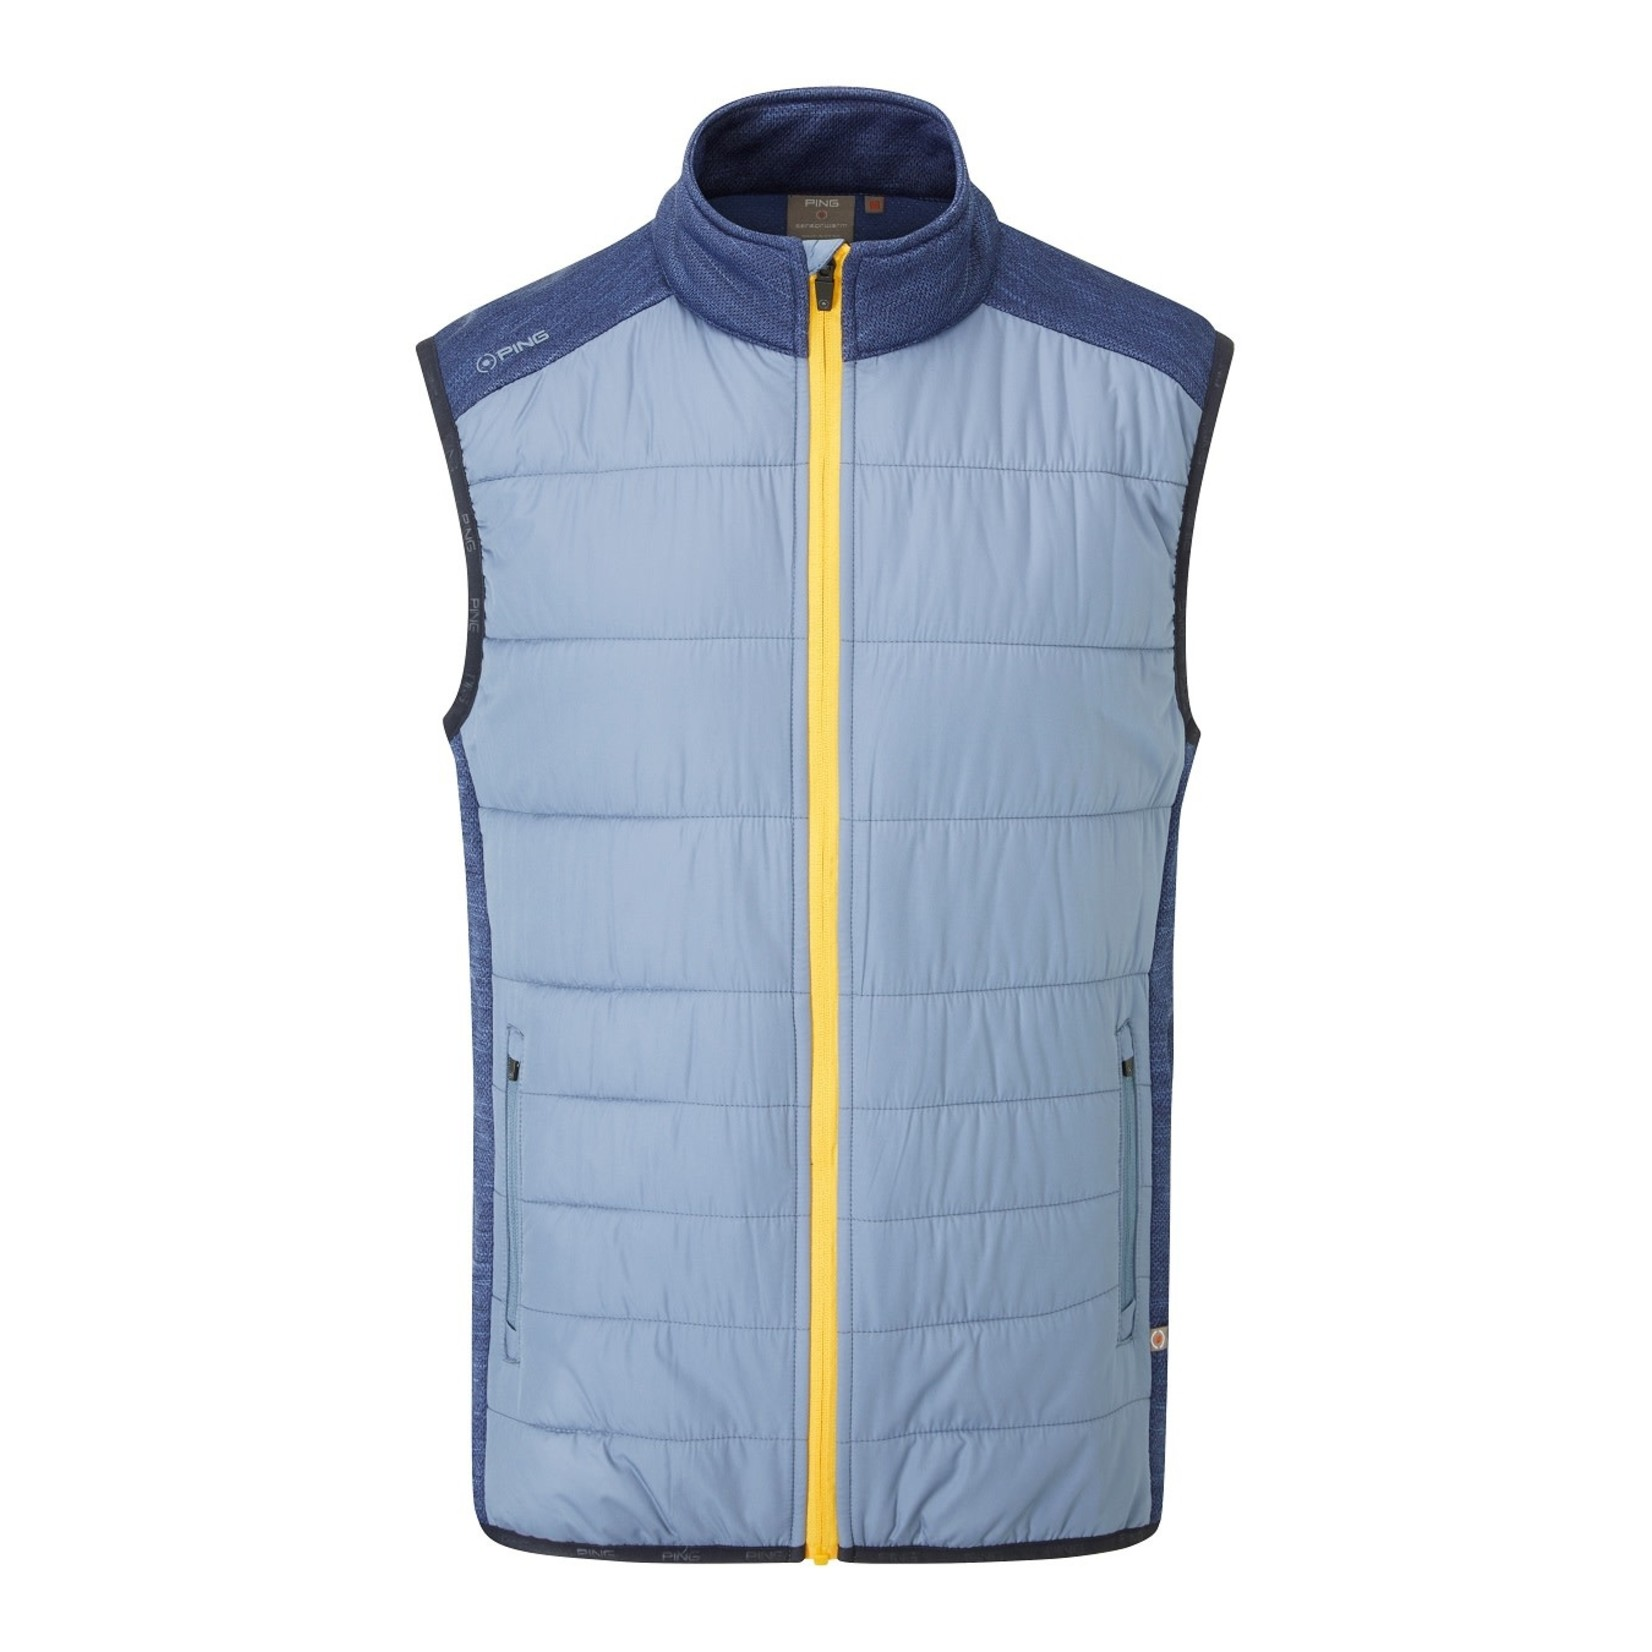 Ping Ping Dover Vest - Greystone/Oxford Blue